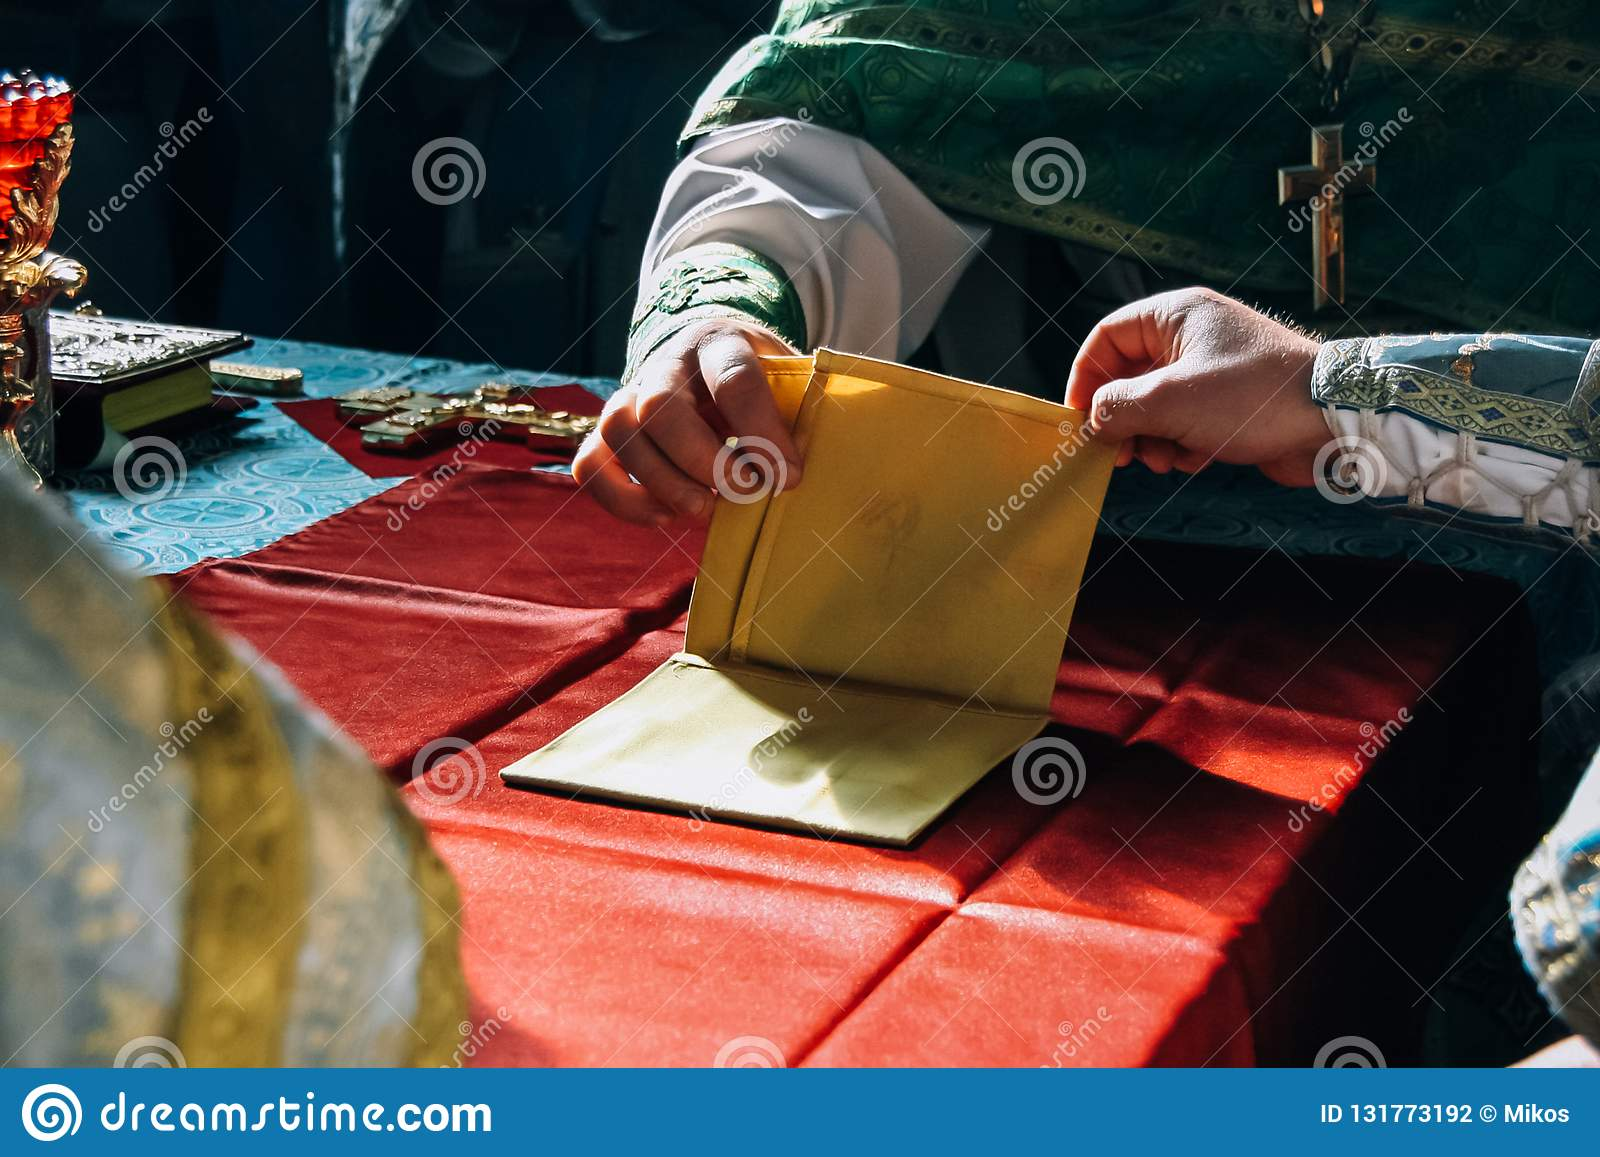 The hands of the priests and blessed altar cloth in the altar of the church